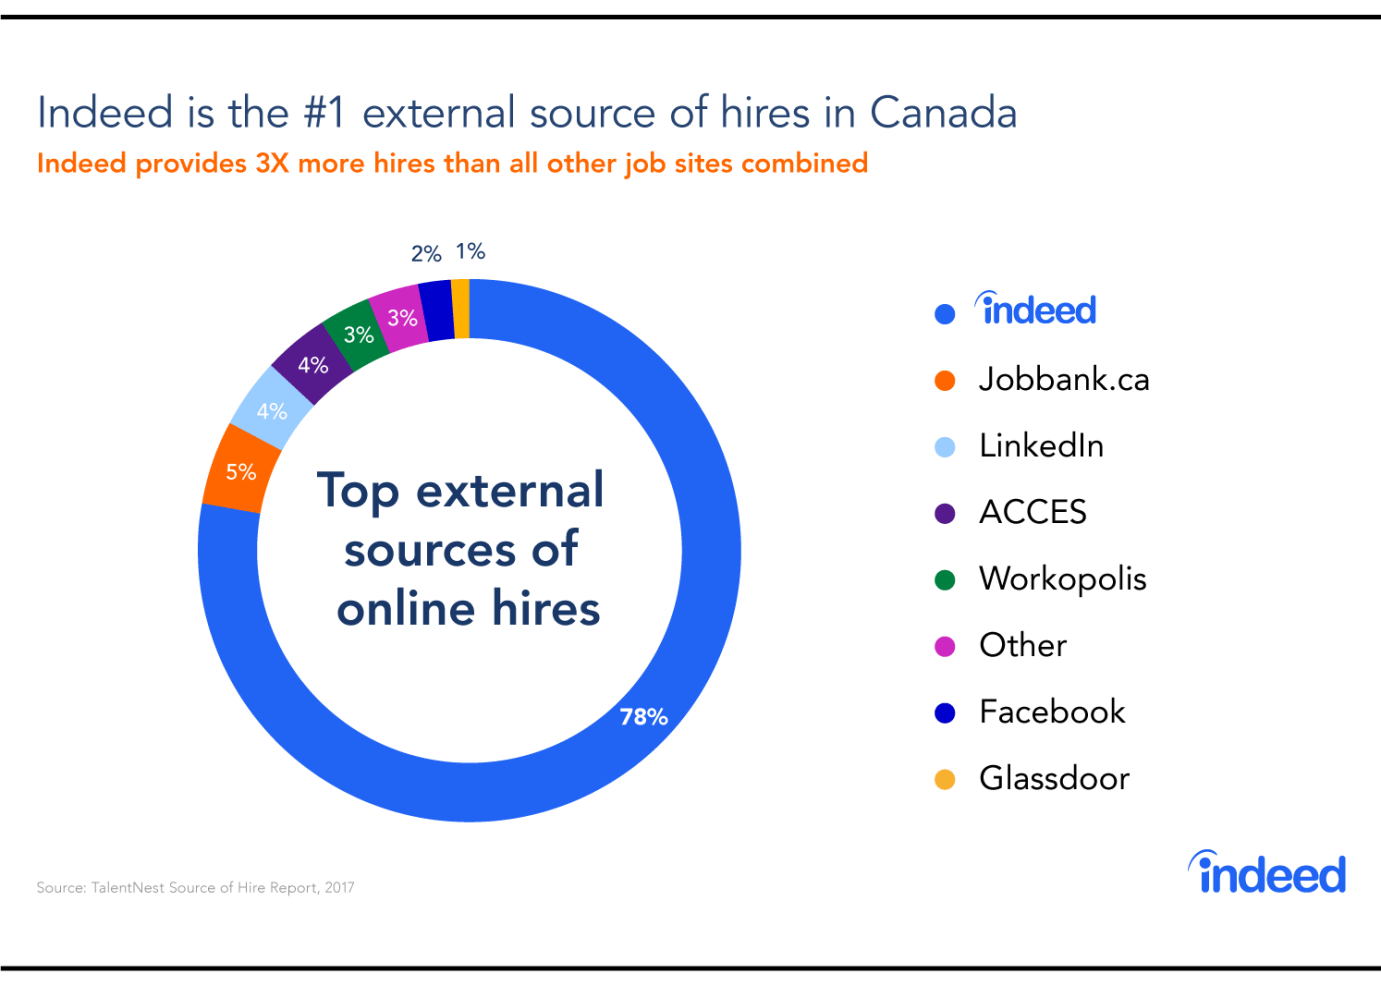 Report: Indeed Delivers 3 Times More Hires Than All Other Canadian